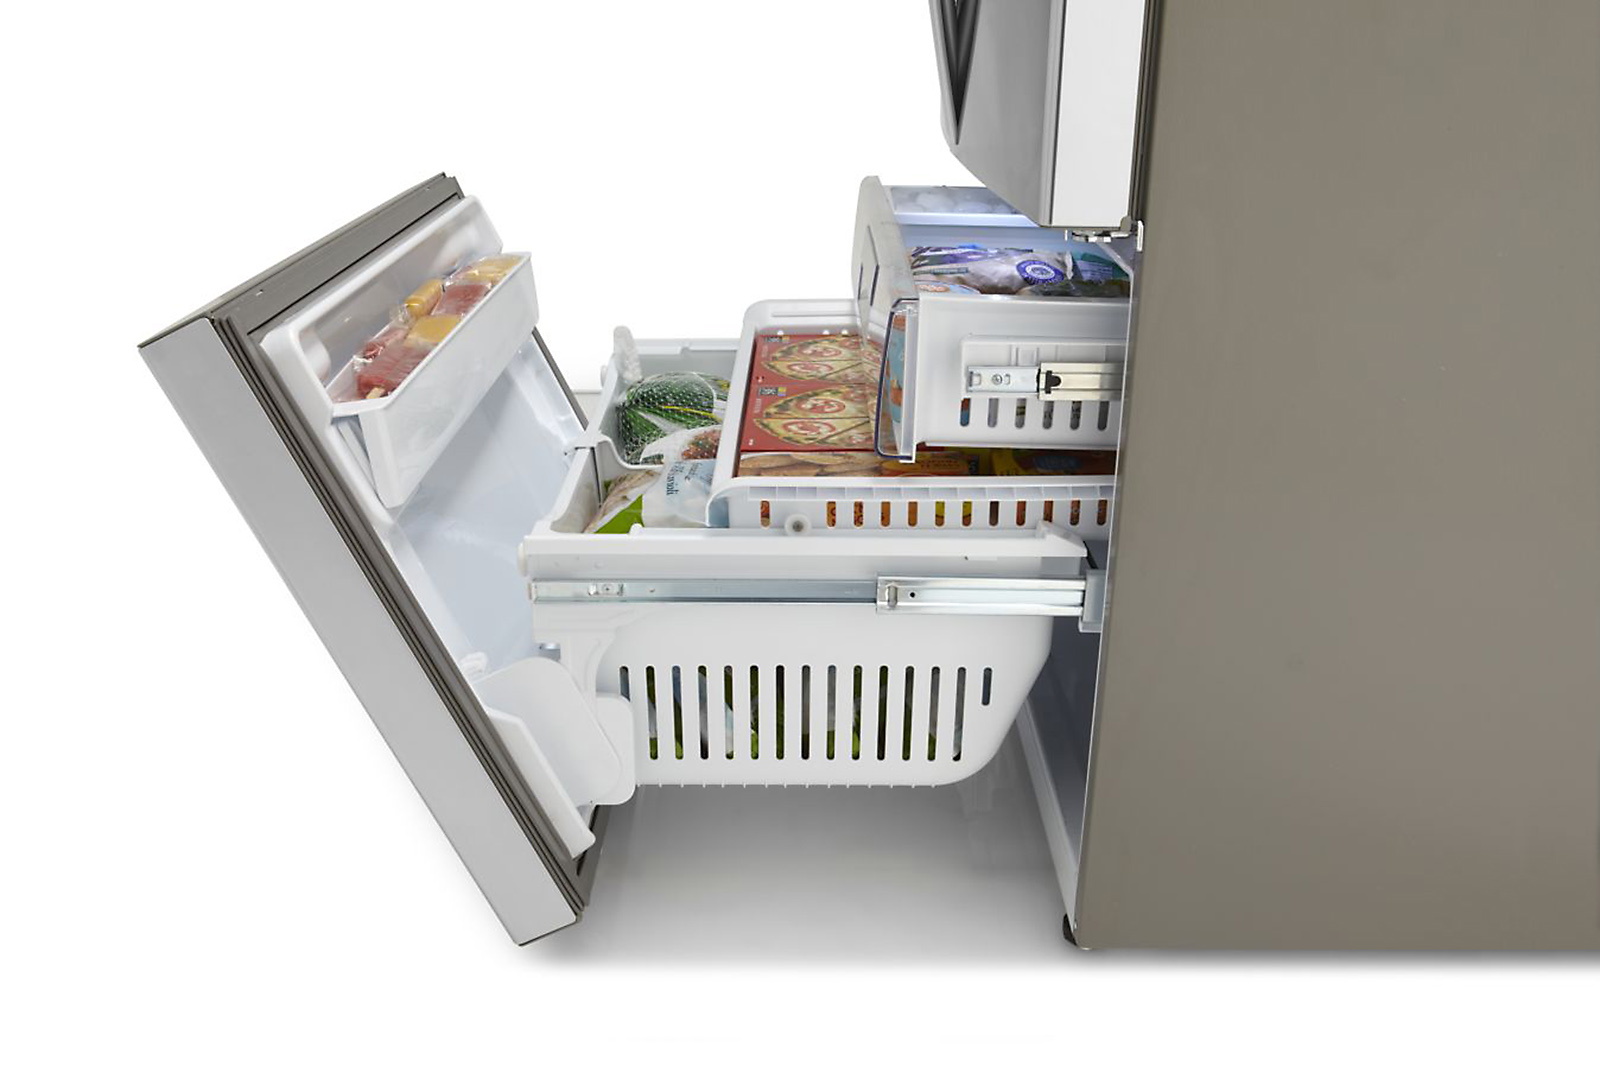 Kenmore Elite 31.0 cu. ft. French Door Bottom-Freezer Refrigerator - Stainless Steel